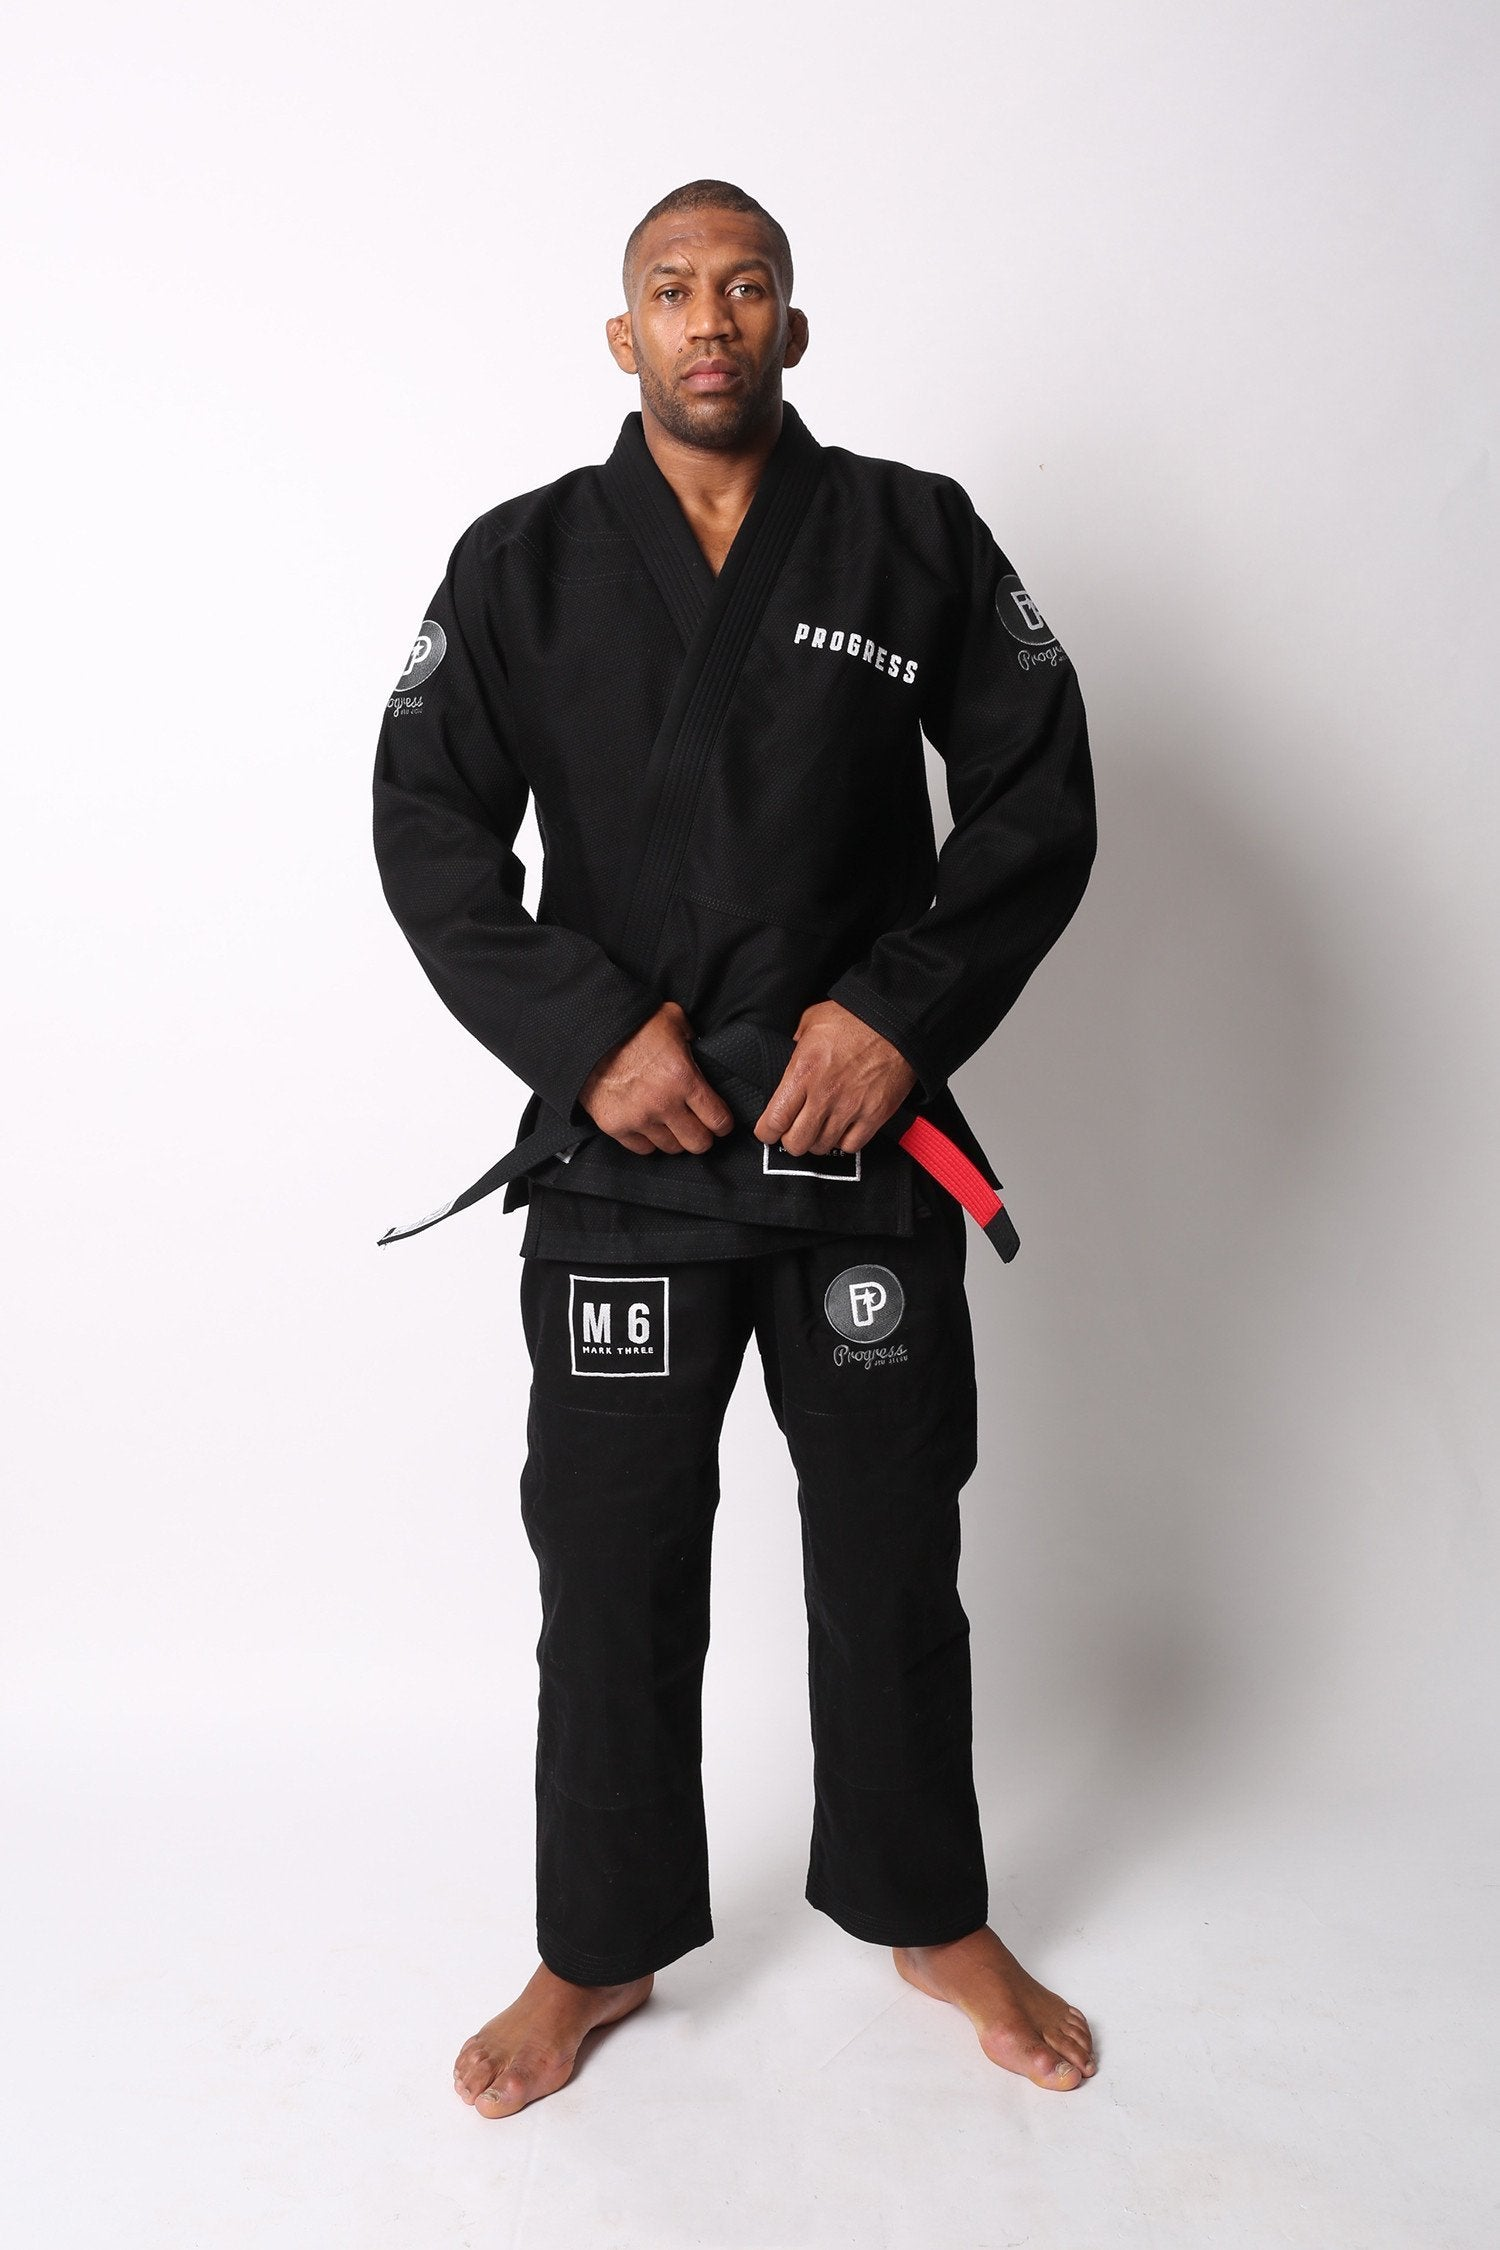 Image of Progress M6 MK3 Black BJJ Gi